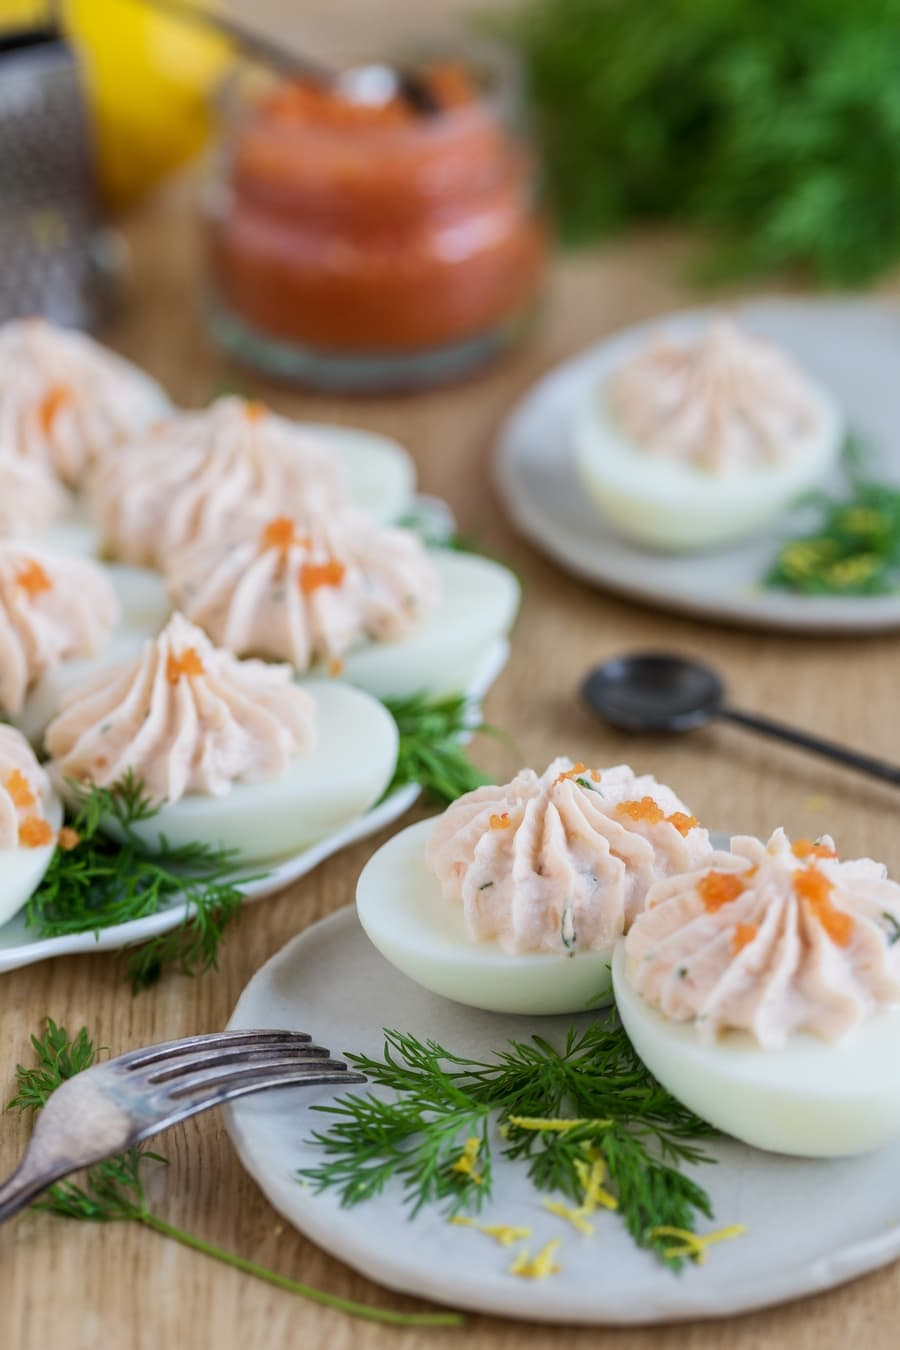 Scandinavian deviled eggs with smoked salmon mousse and fish roe